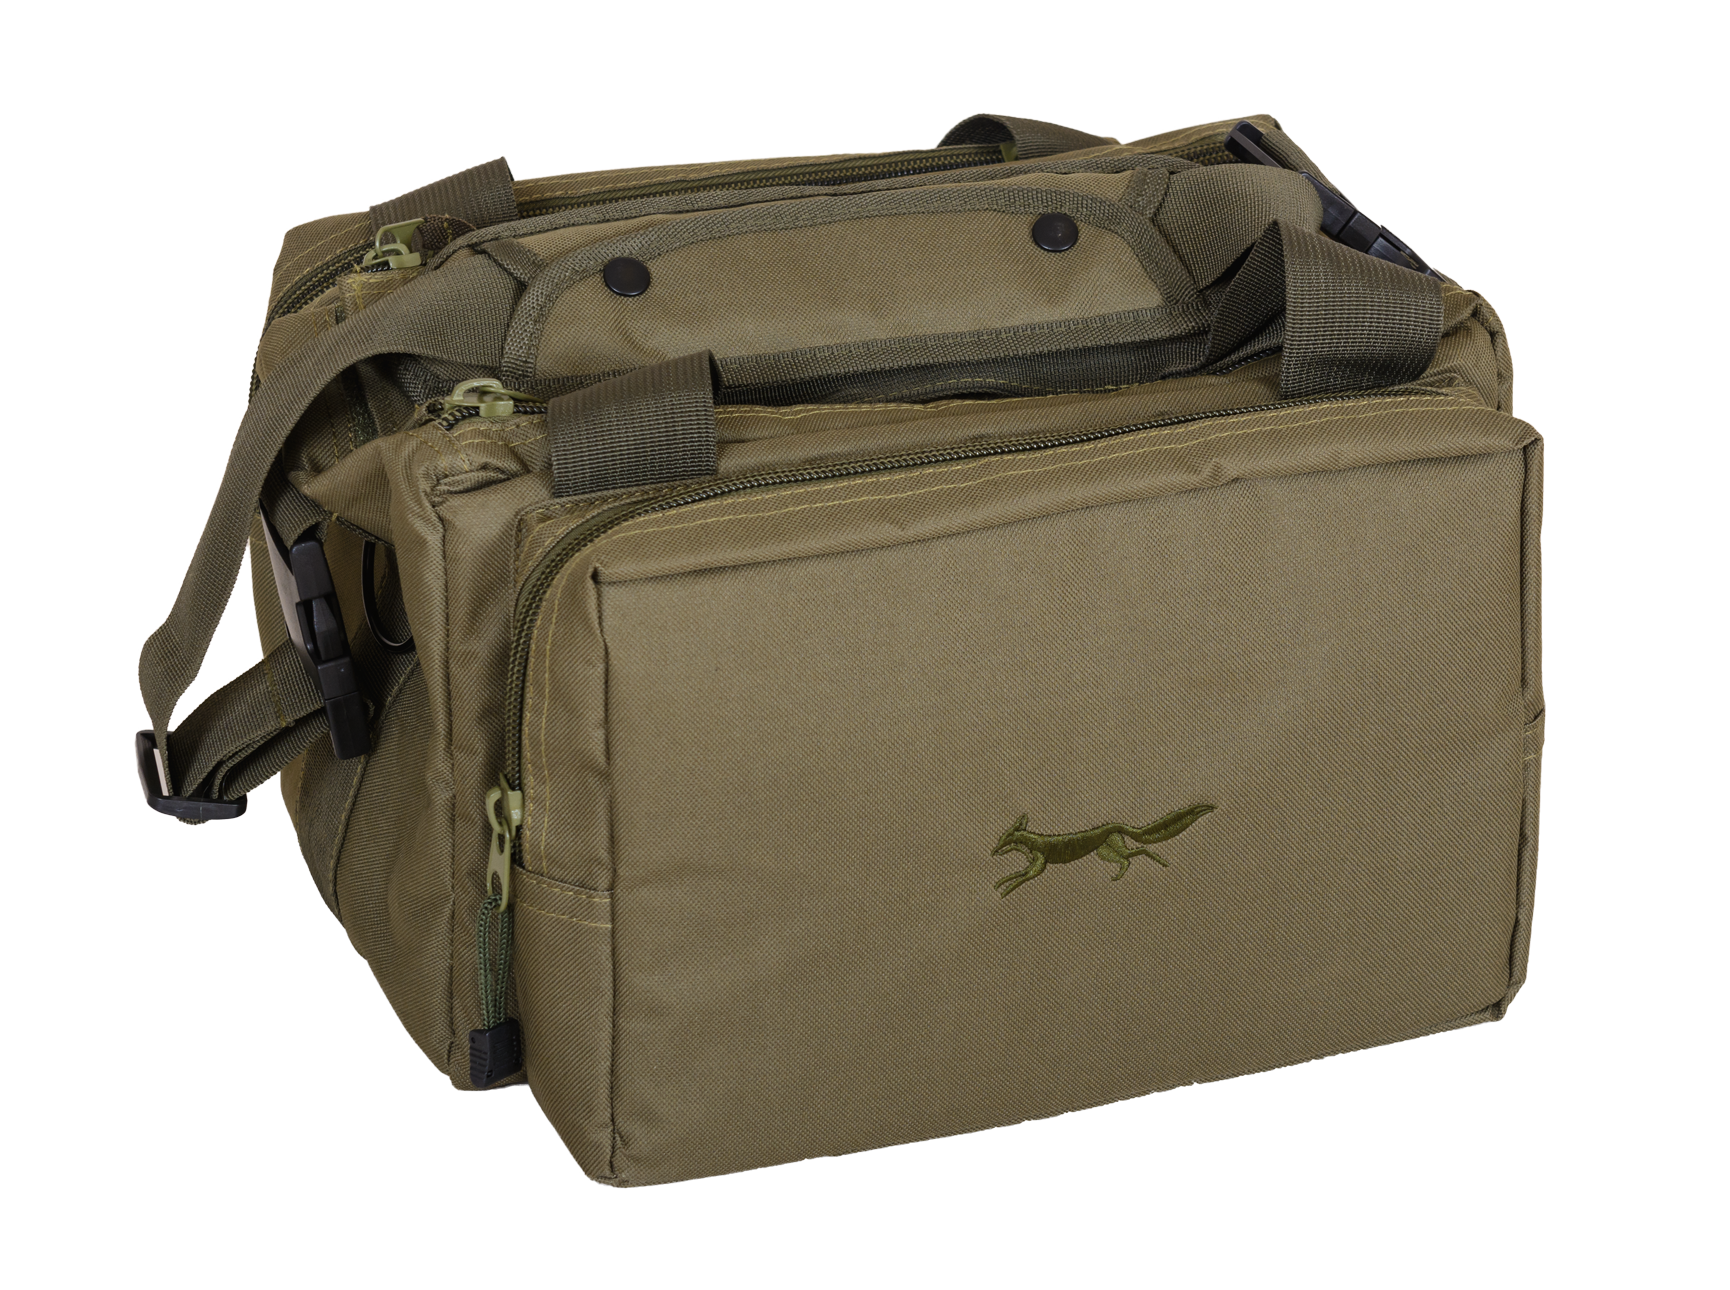 Range Bag - green